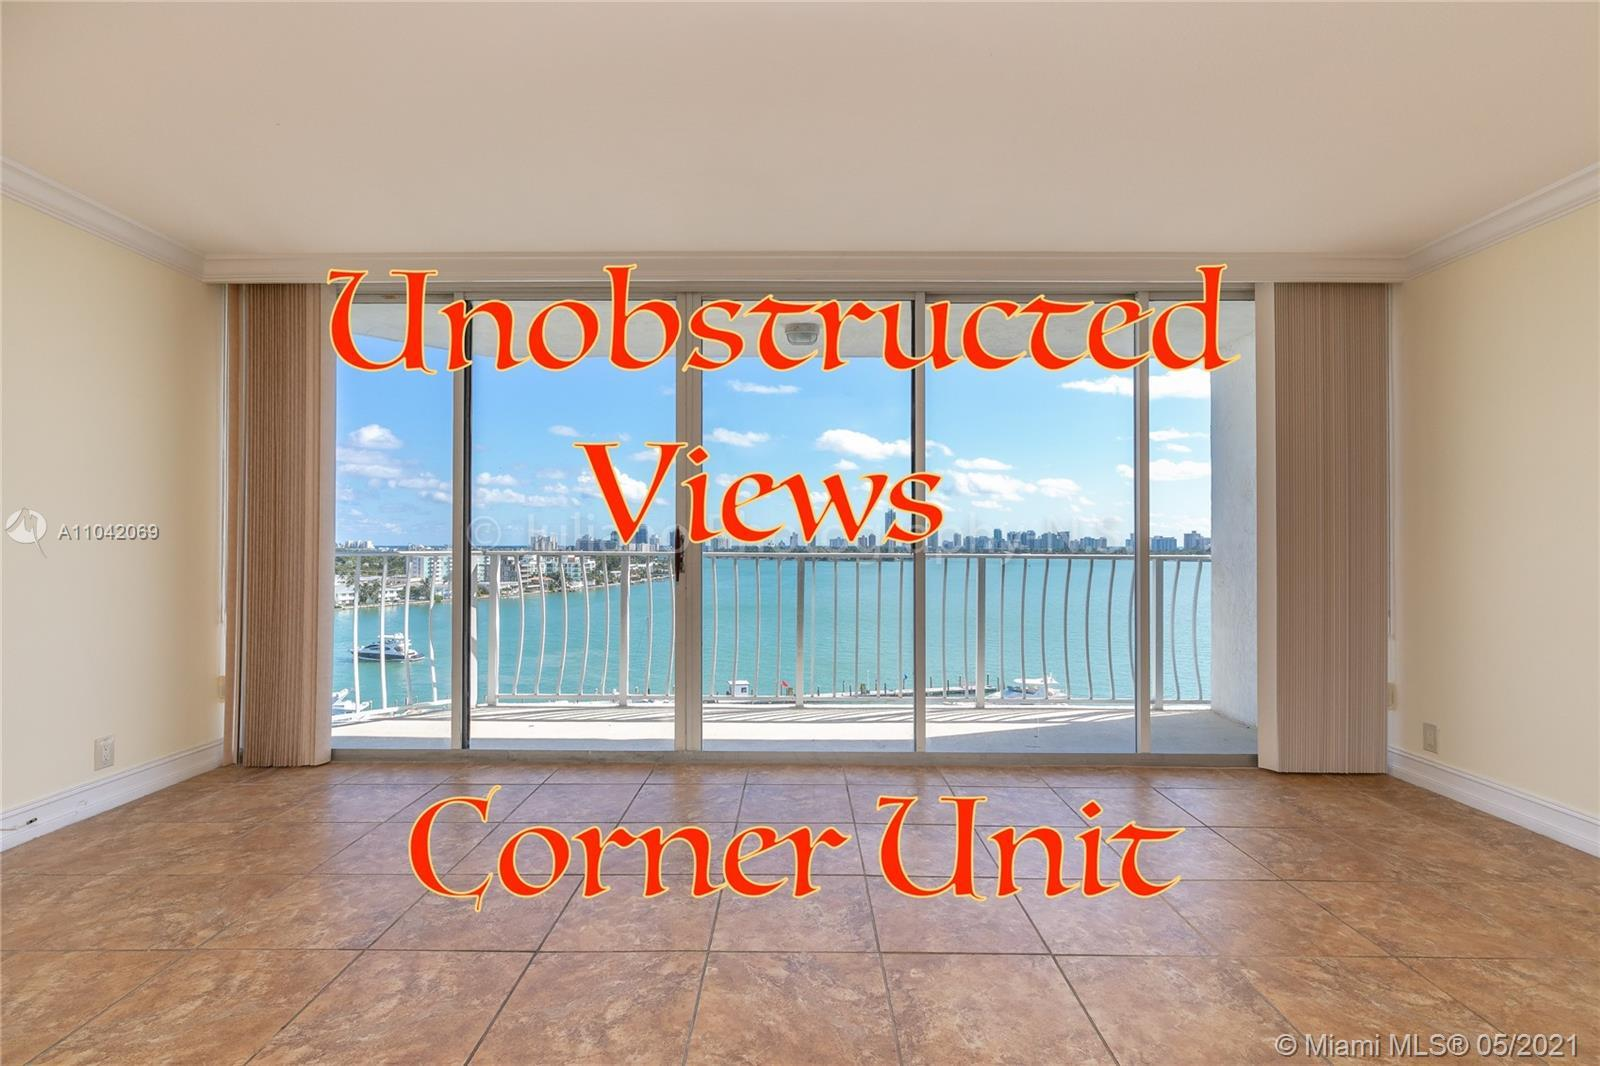 Best Corner unit available in the Building. Stunning waterfront condo. Don't miss these amazing wate